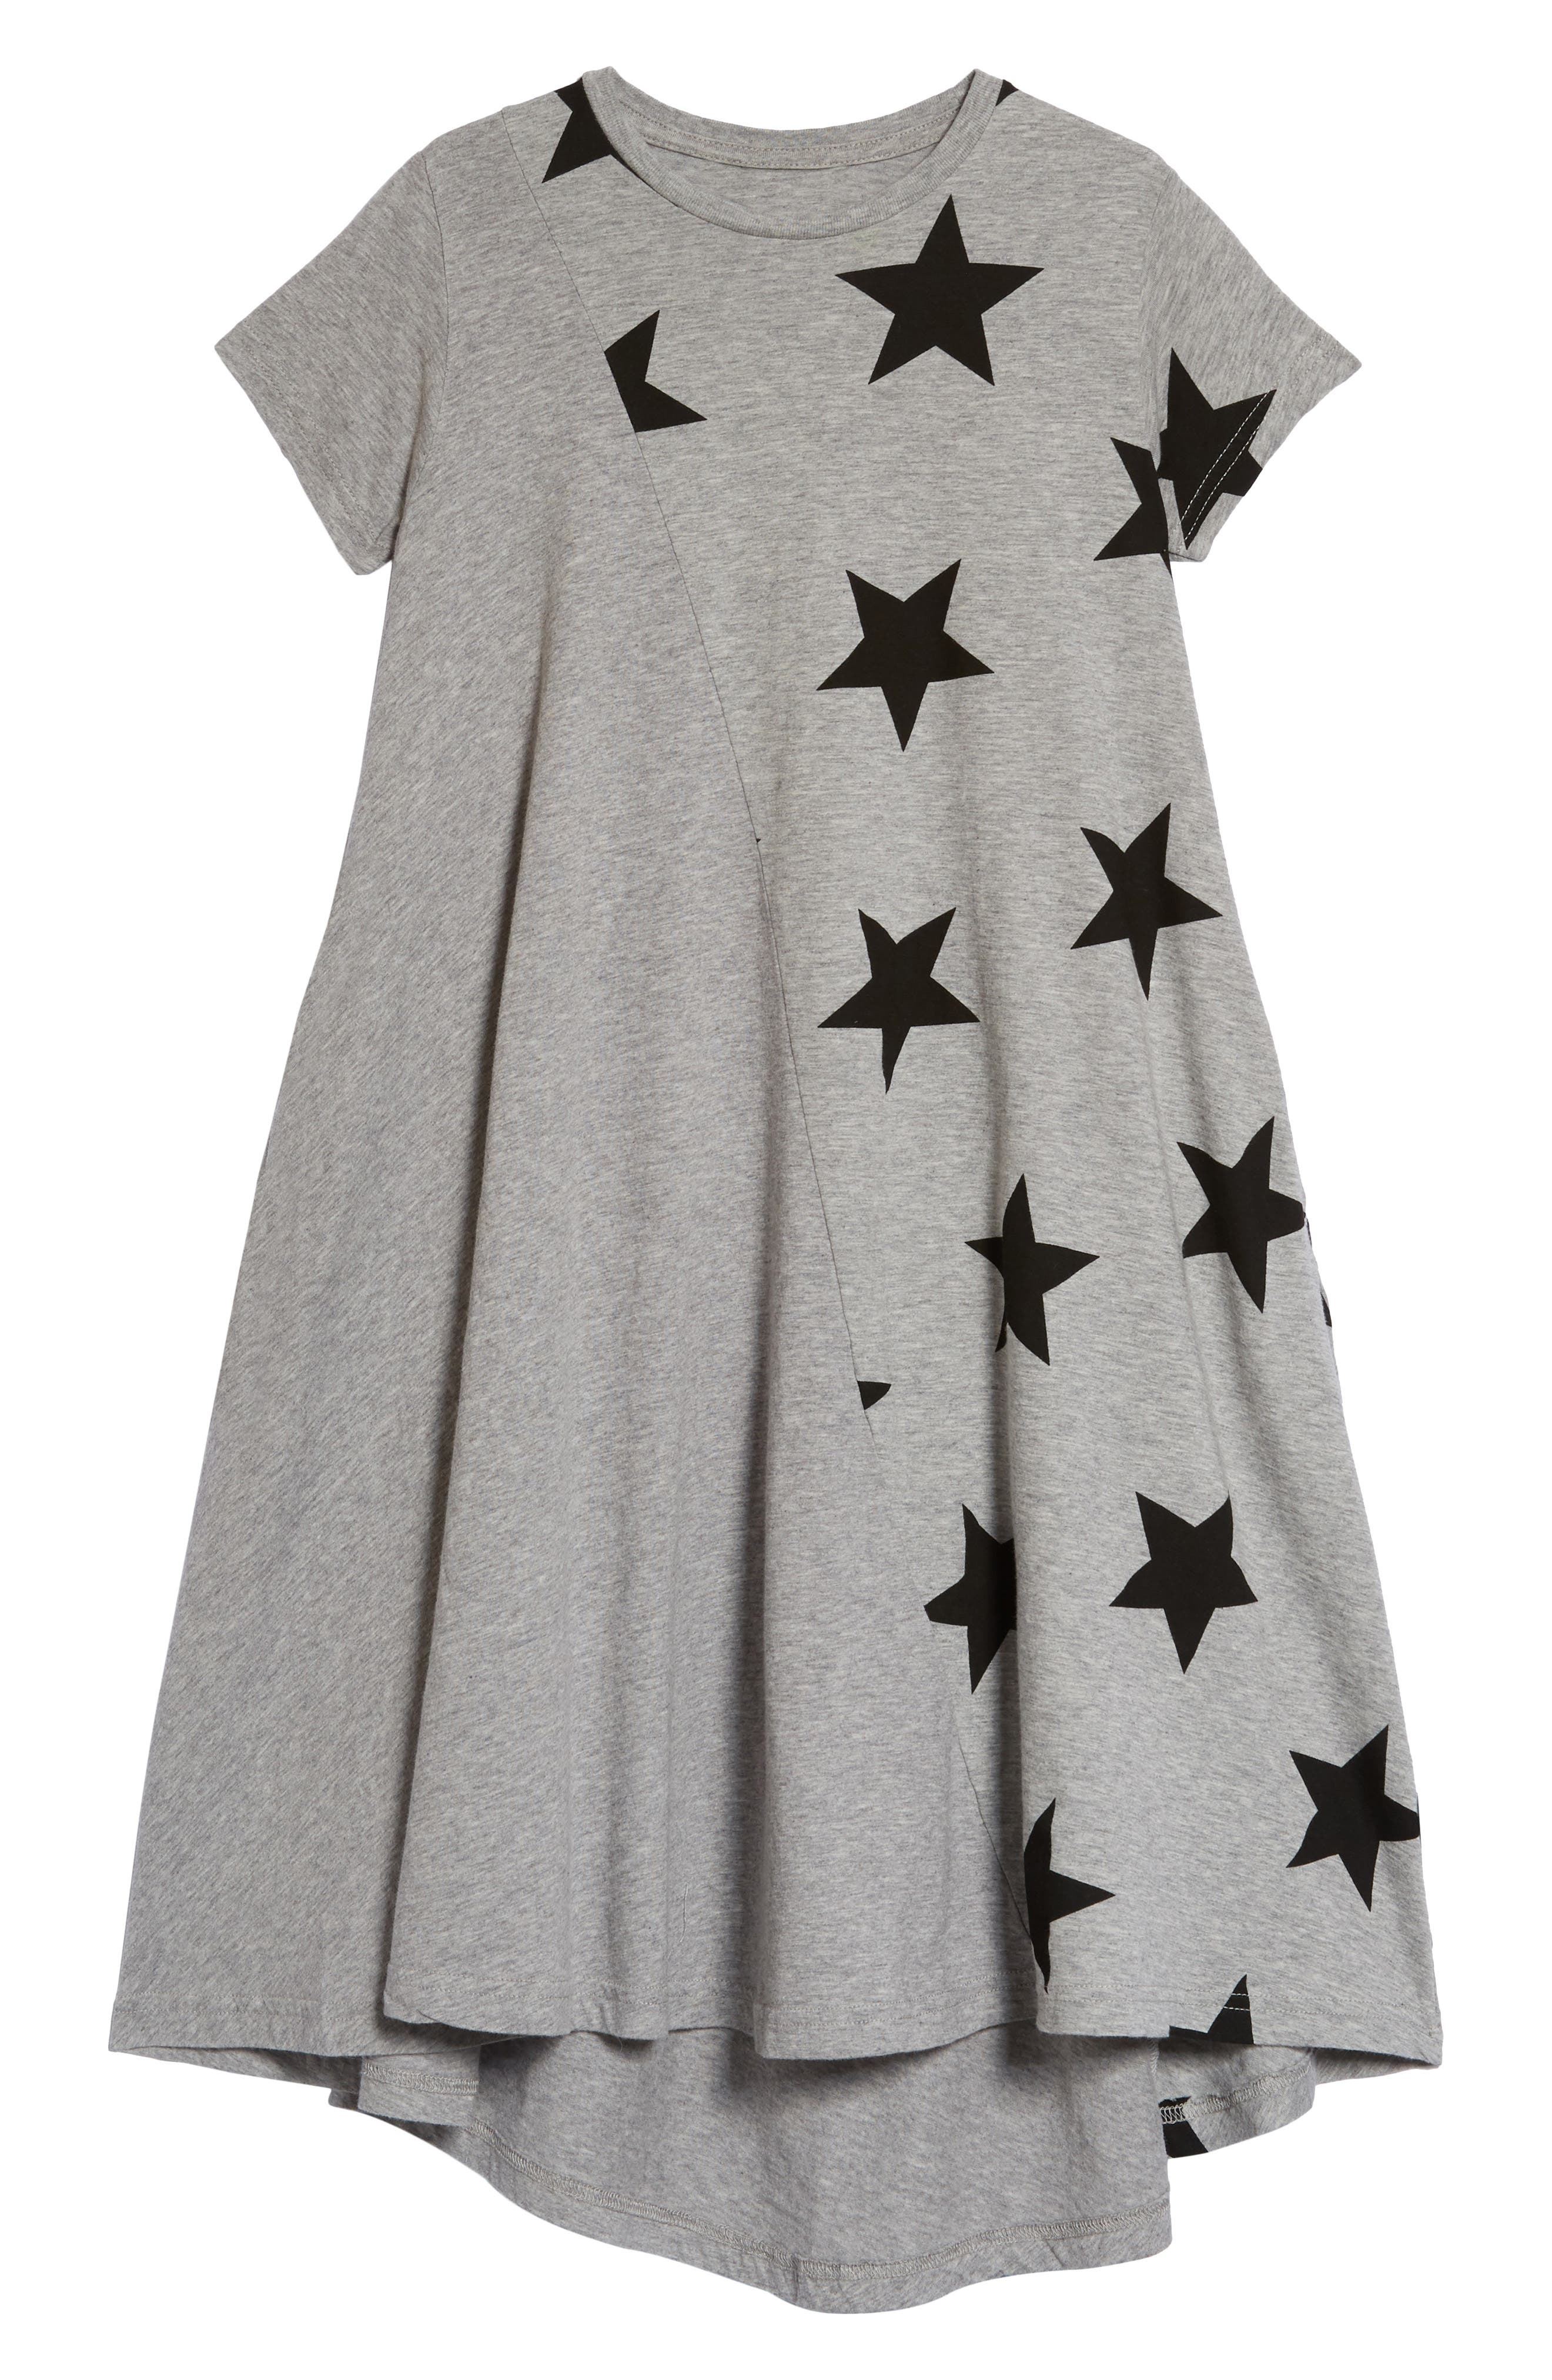 360 Star Print Dress,                         Main,                         color, 050